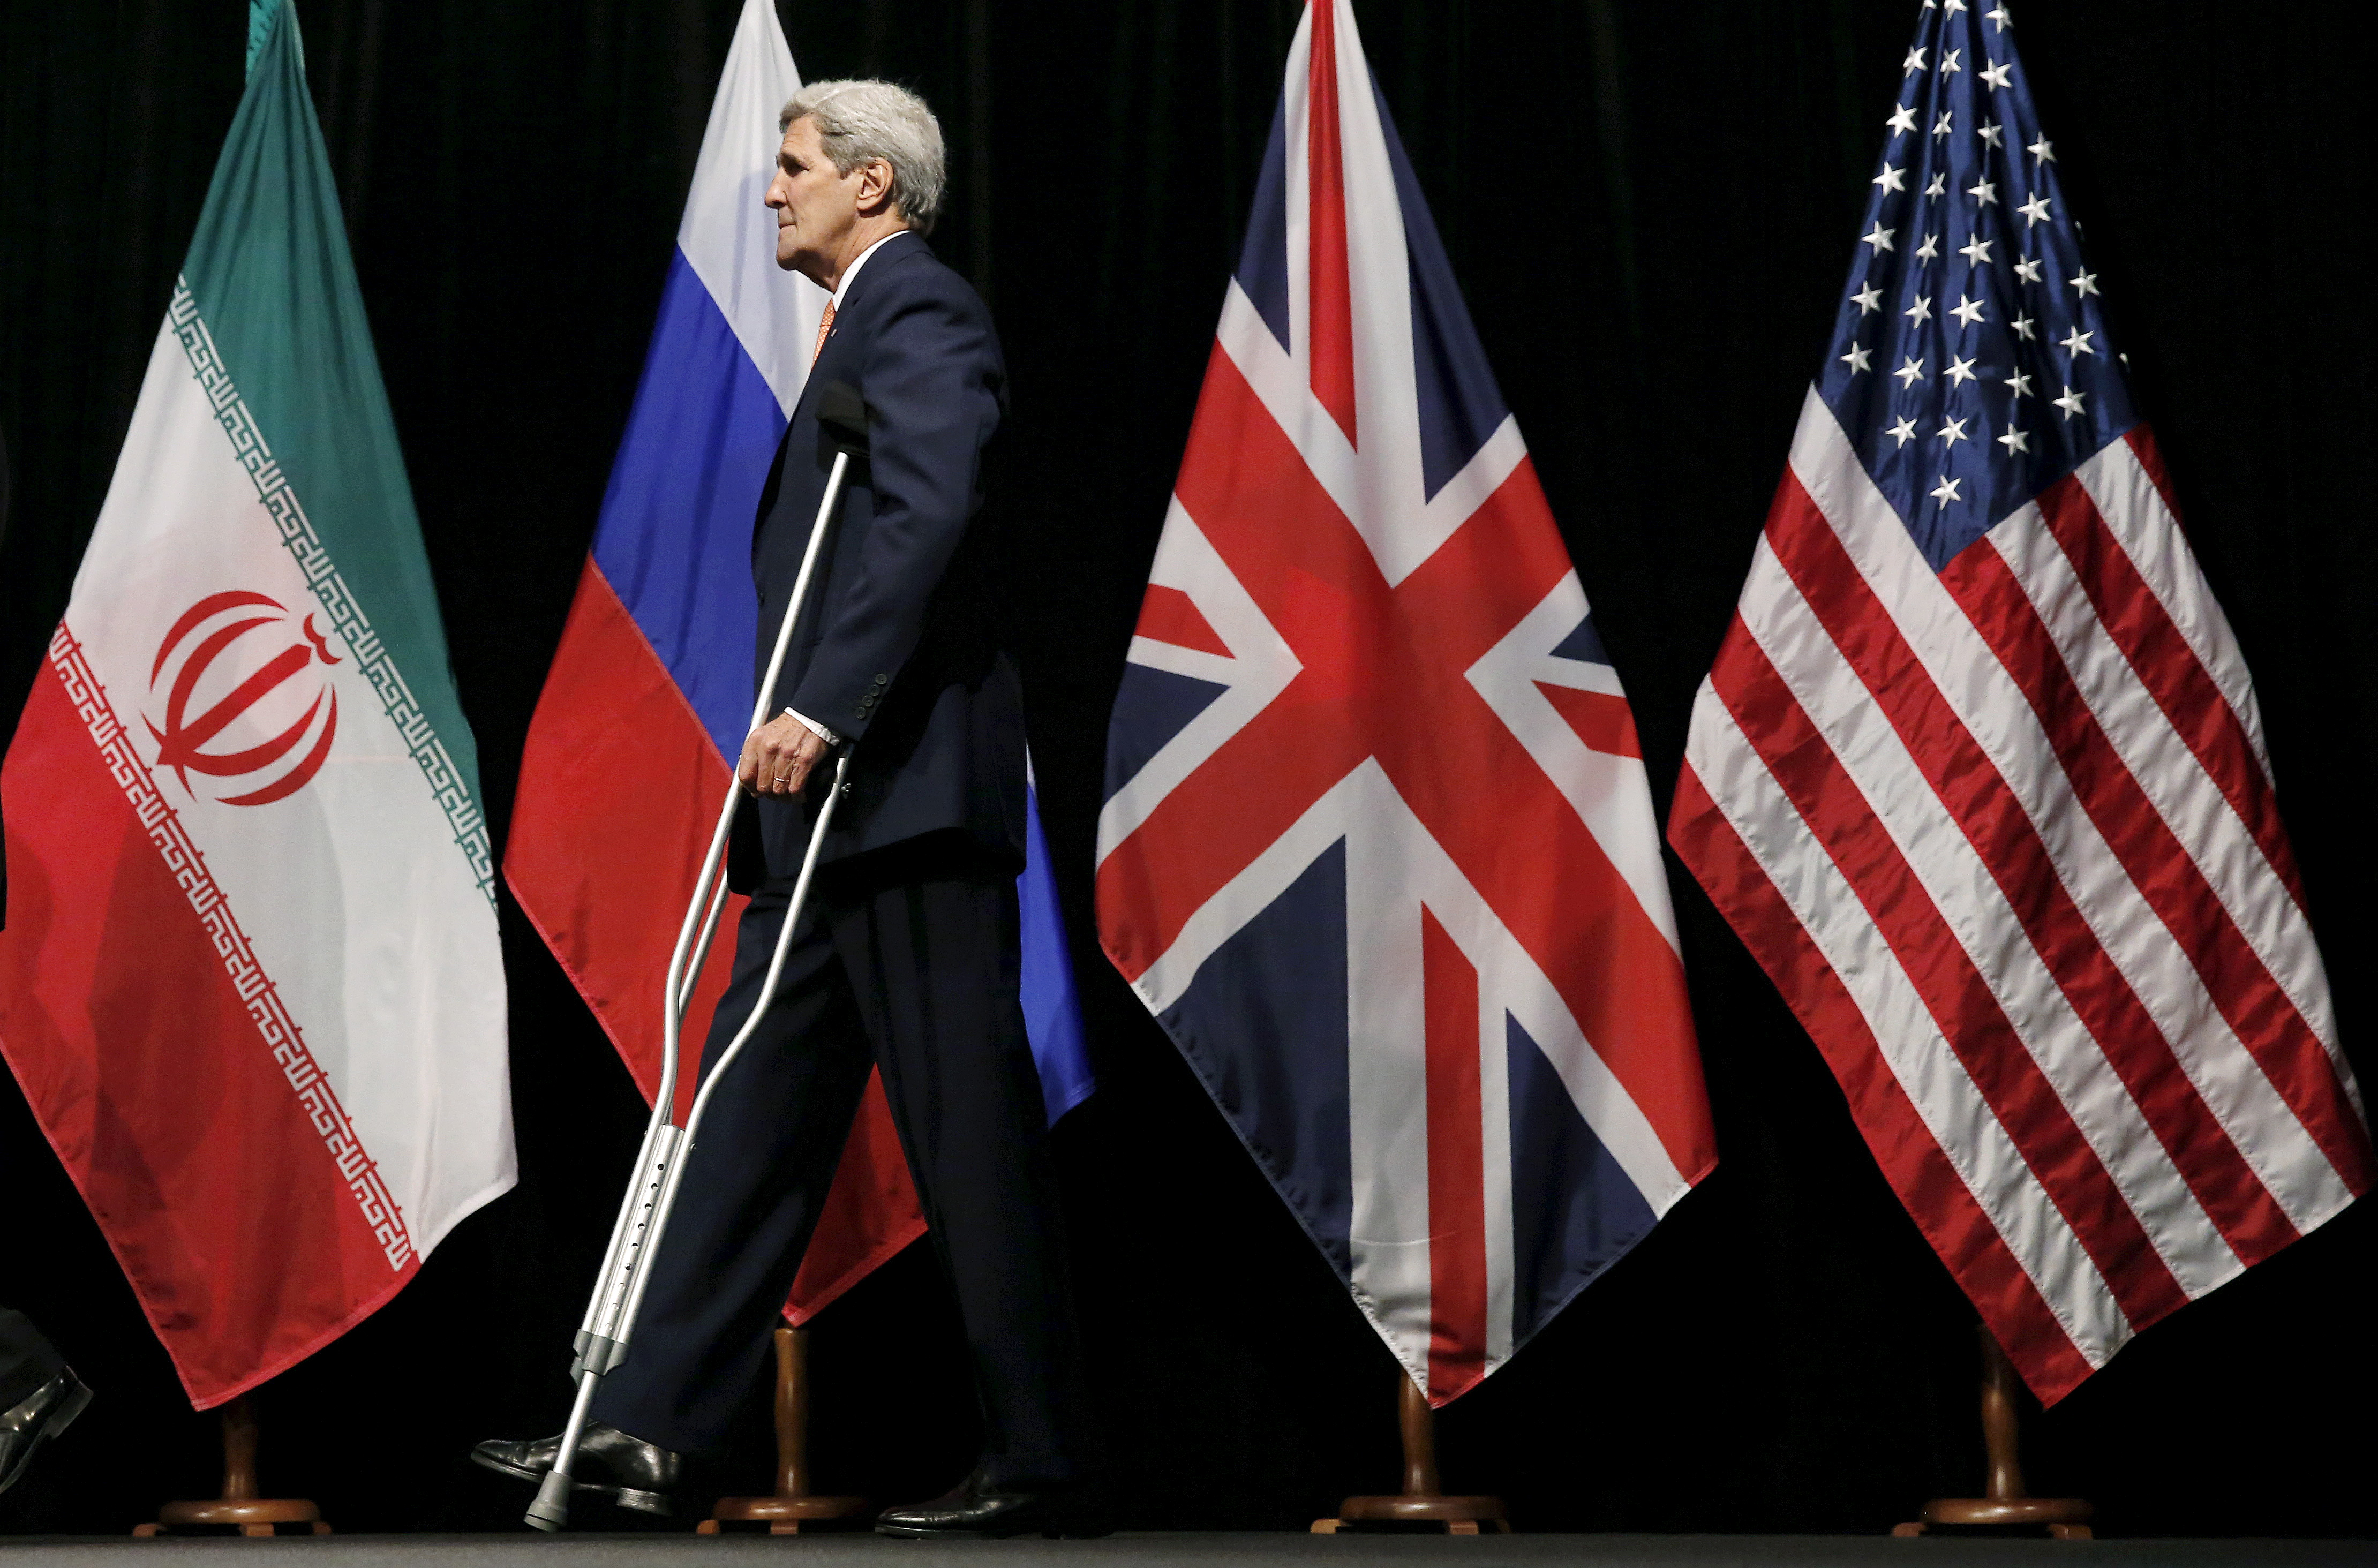 Secretary of State John Kerry walking past flags.